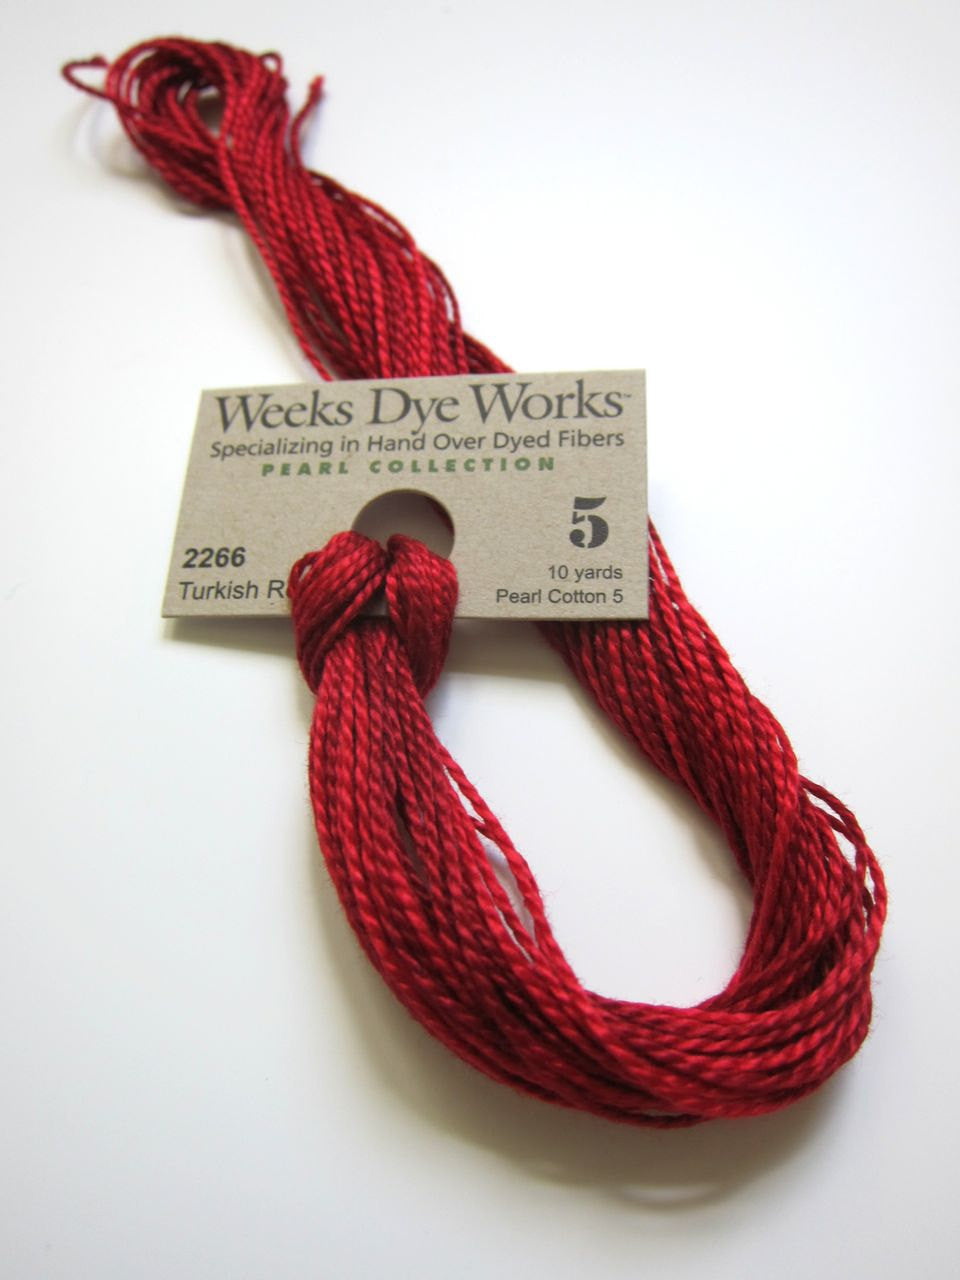 Turkish Red Weeks Dye Works Hand Over-Dyed Perle Cotton - Size 5 Perle Cotton - Snuggly Monkey